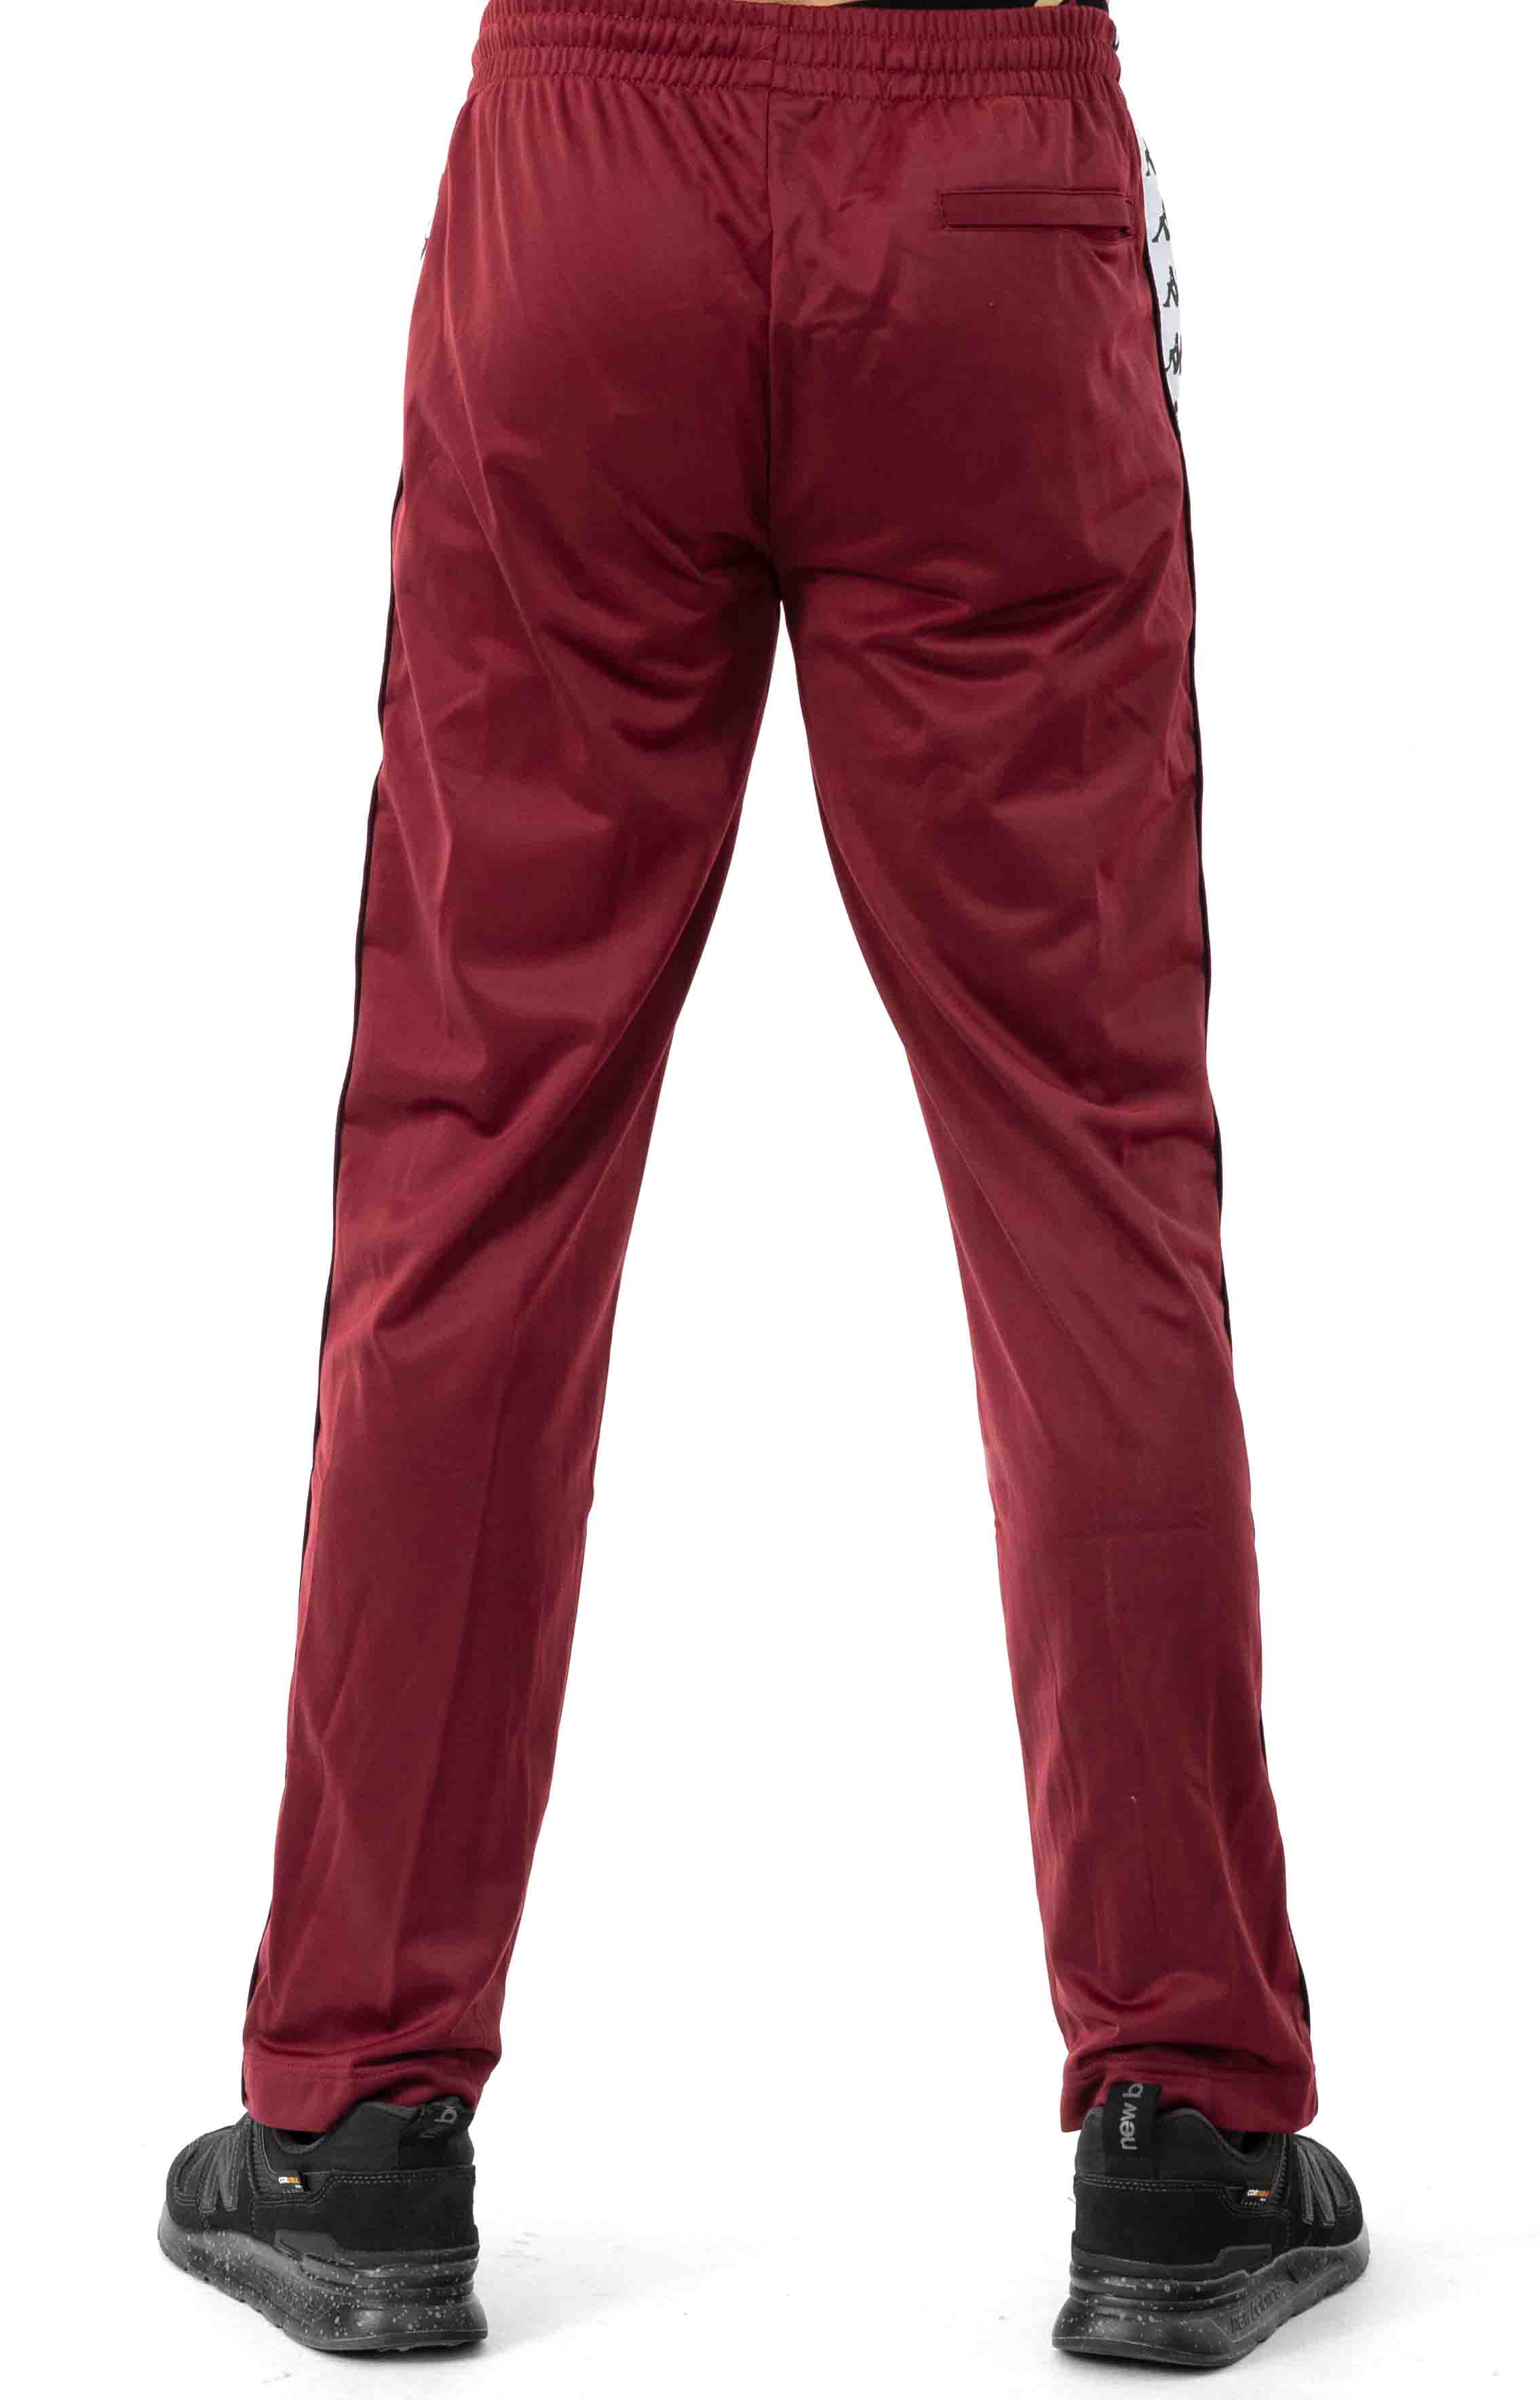 222 Banda Astoriazz Trackpant - Red Dahlia/White 3